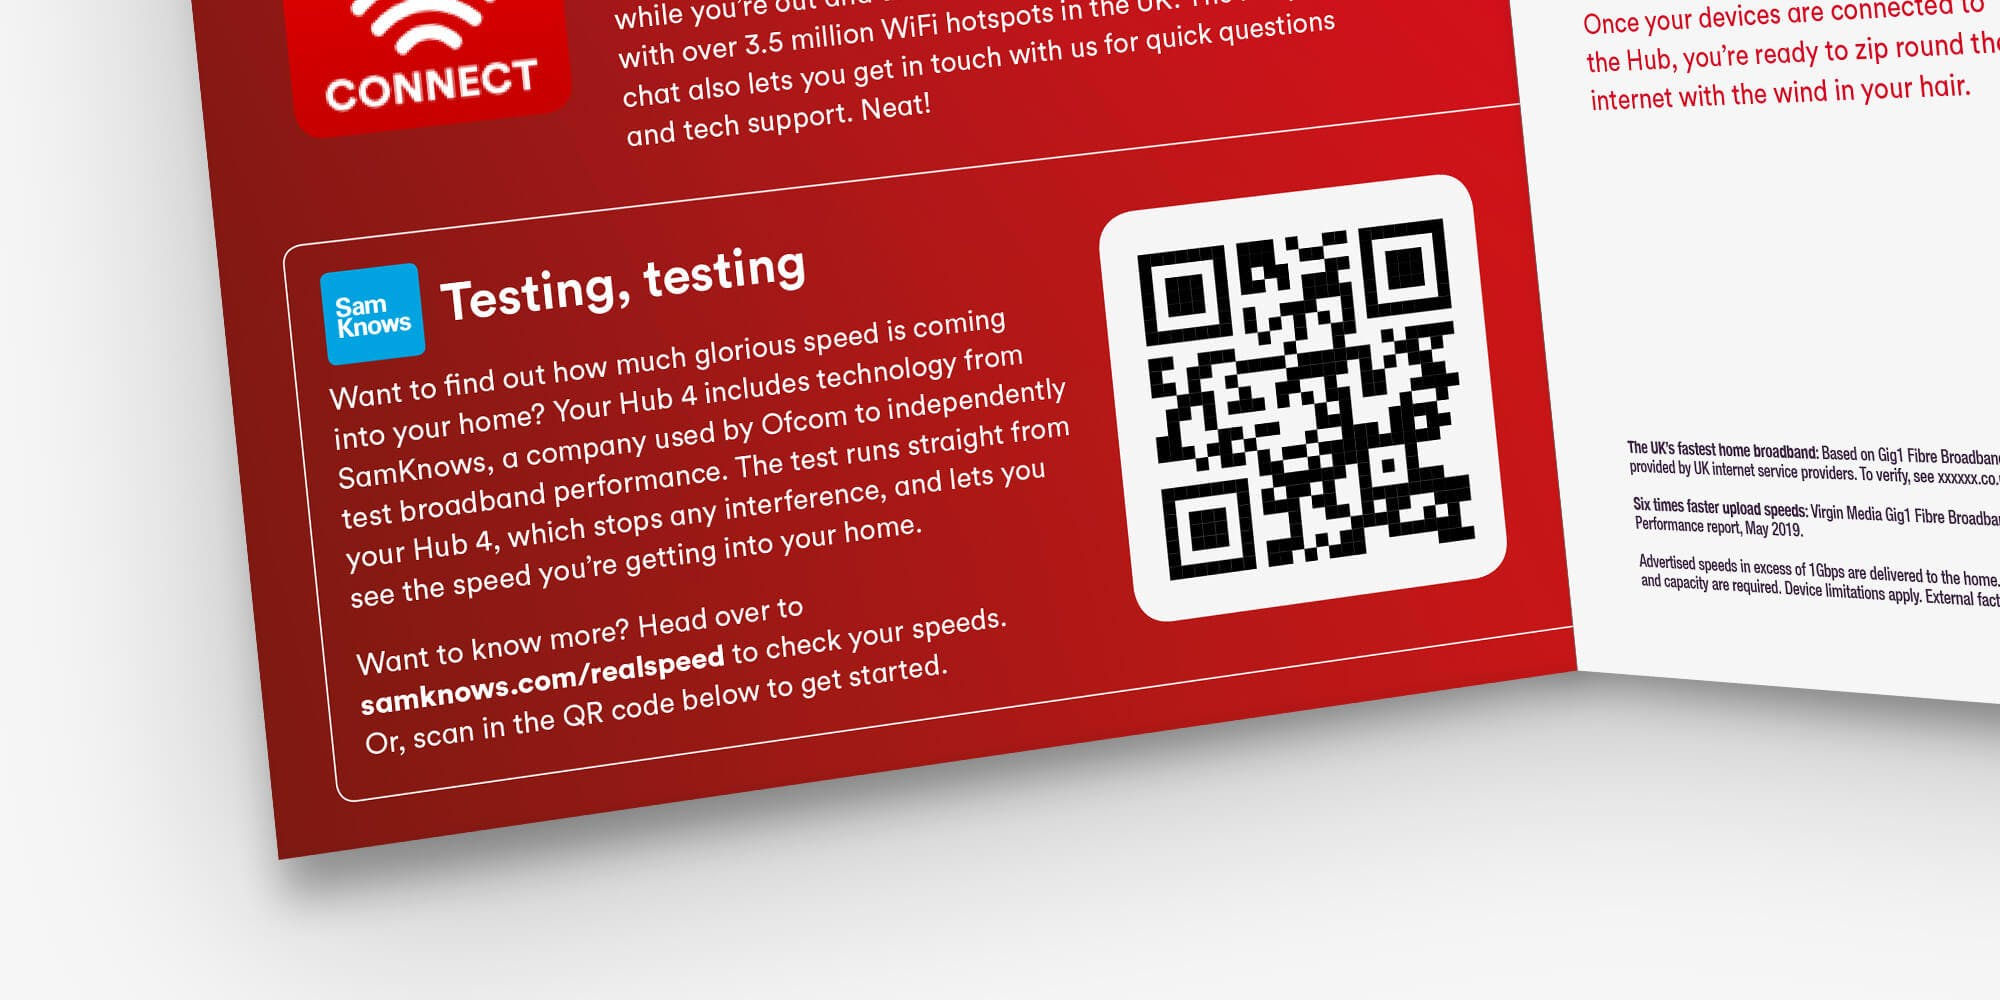 Scan the QR code in your Virgin Media Fibre Guide